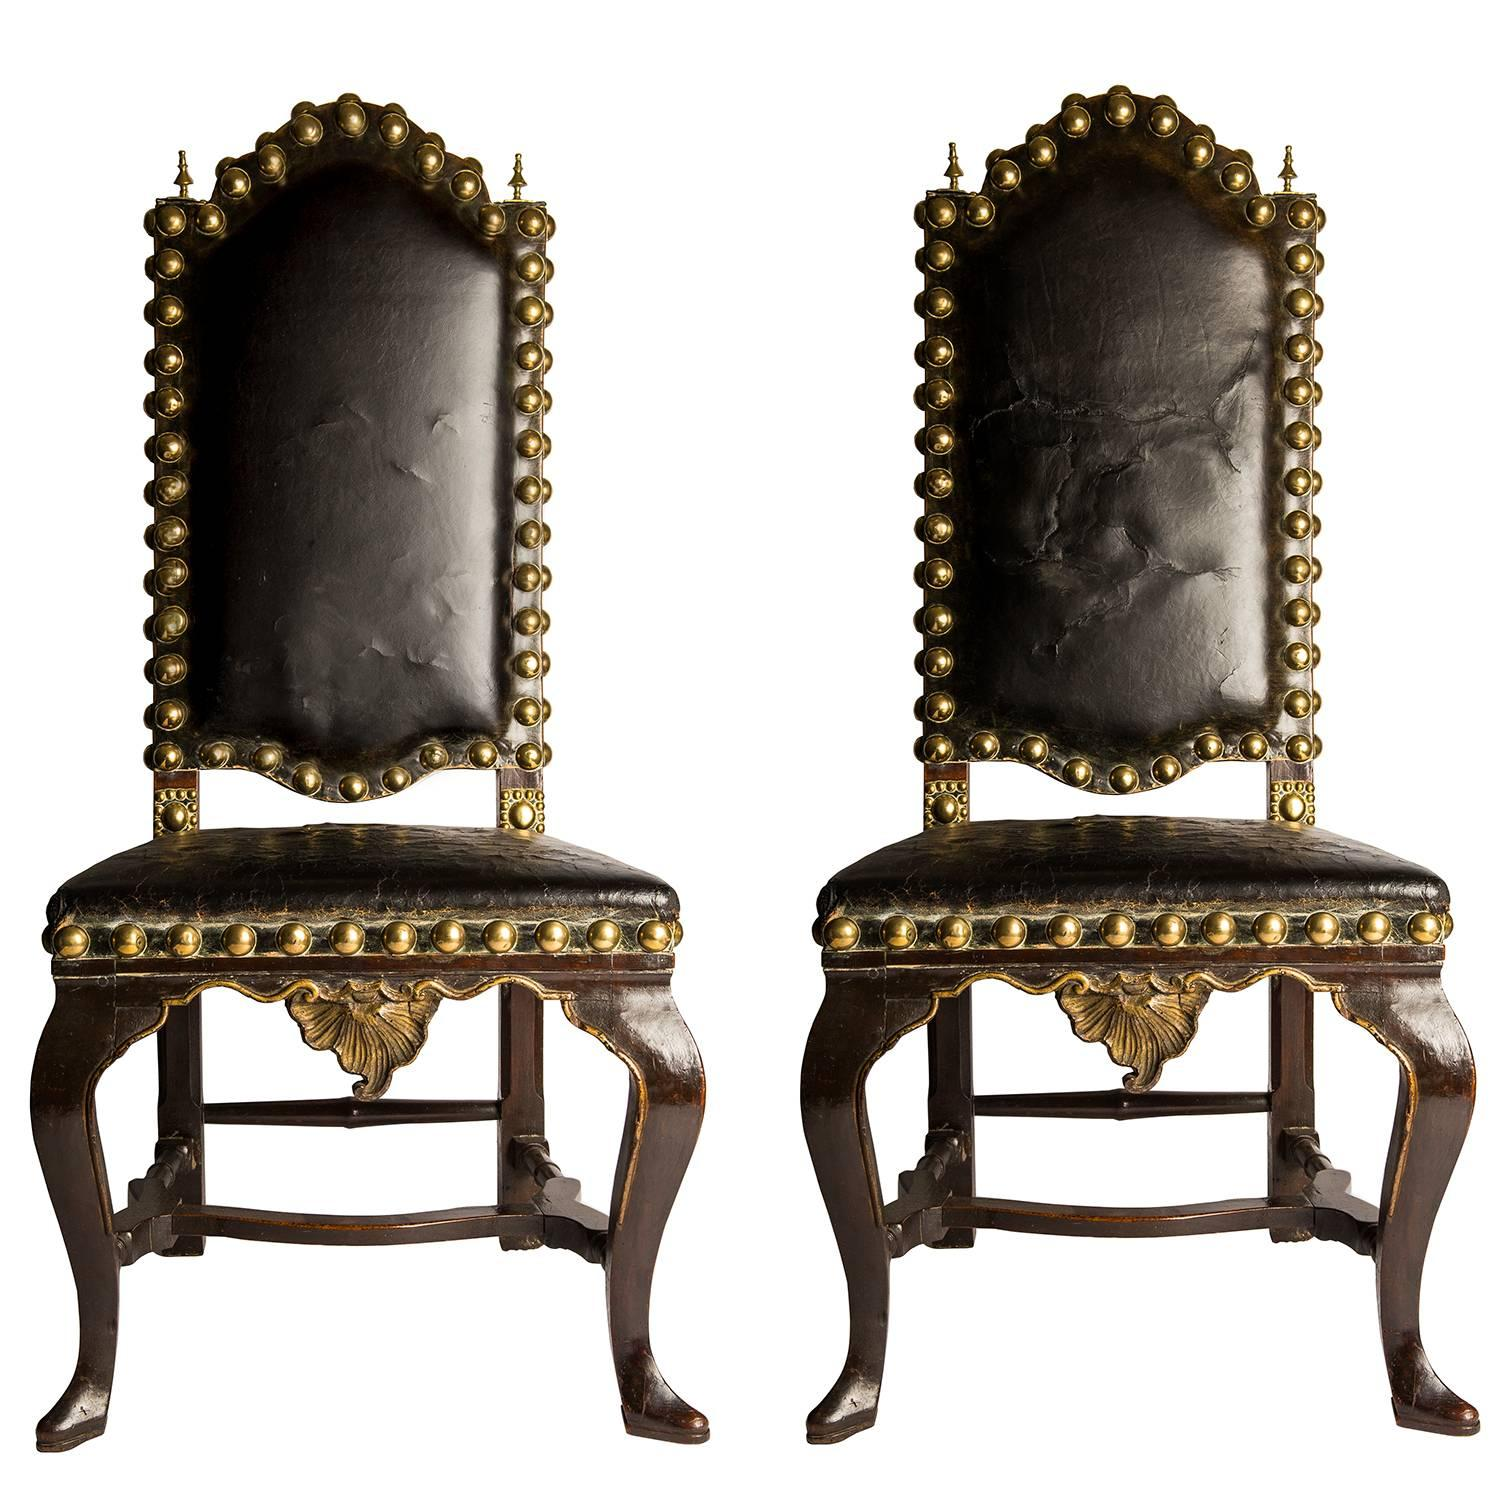 Baroque Corner Chairs - Antique And Vintage Corner Chairs - 210 For Sale At 1stdibs